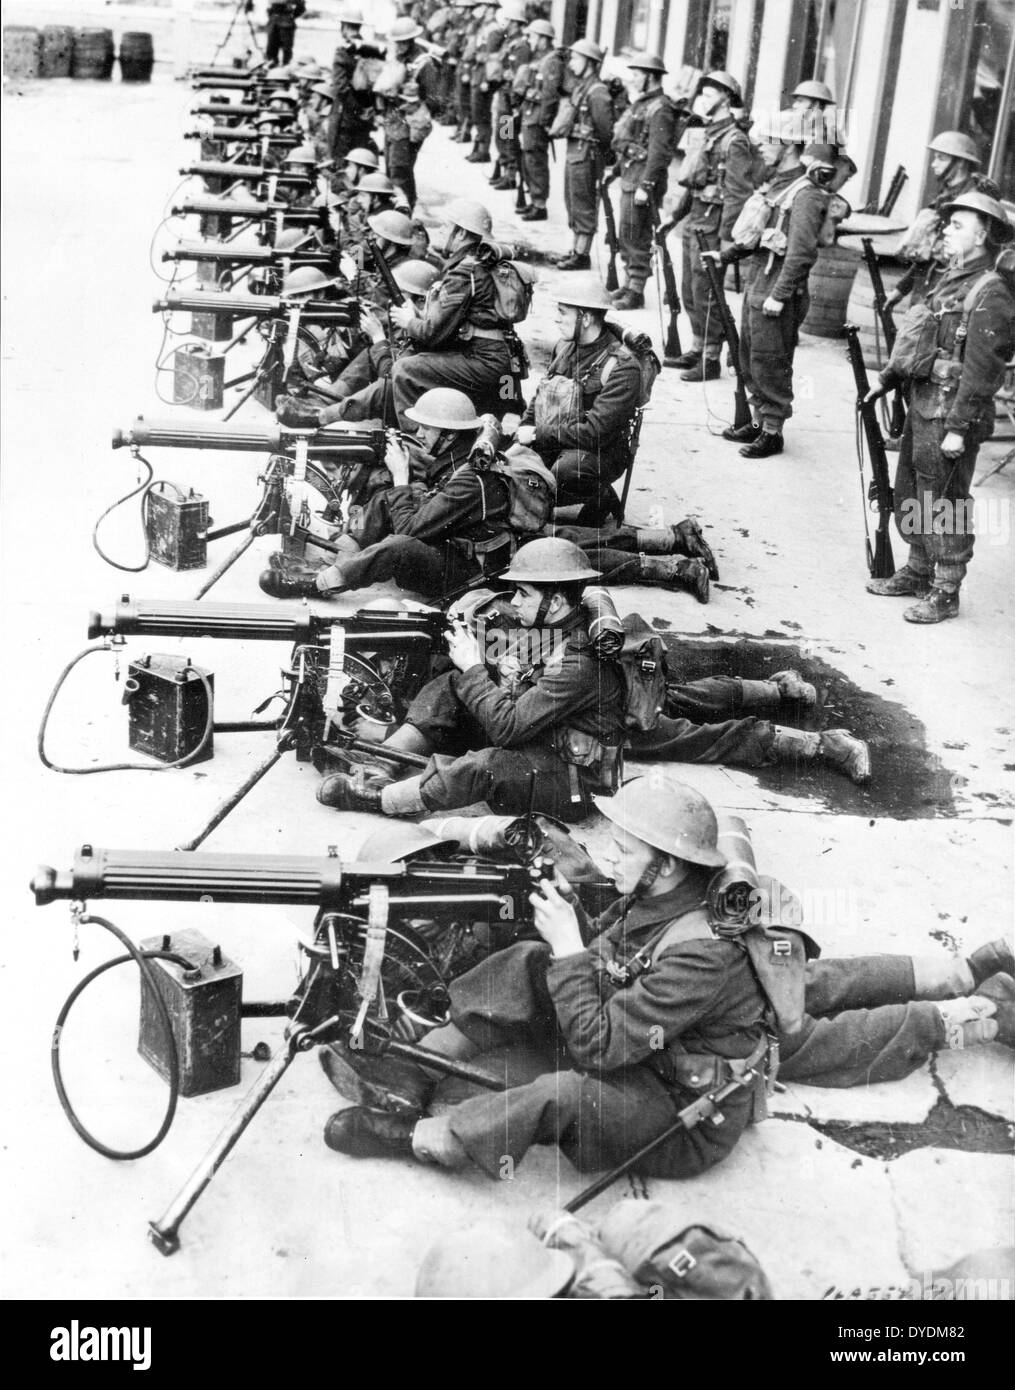 Vickers machine gun teams of the British army during early ww2 - Stock Image